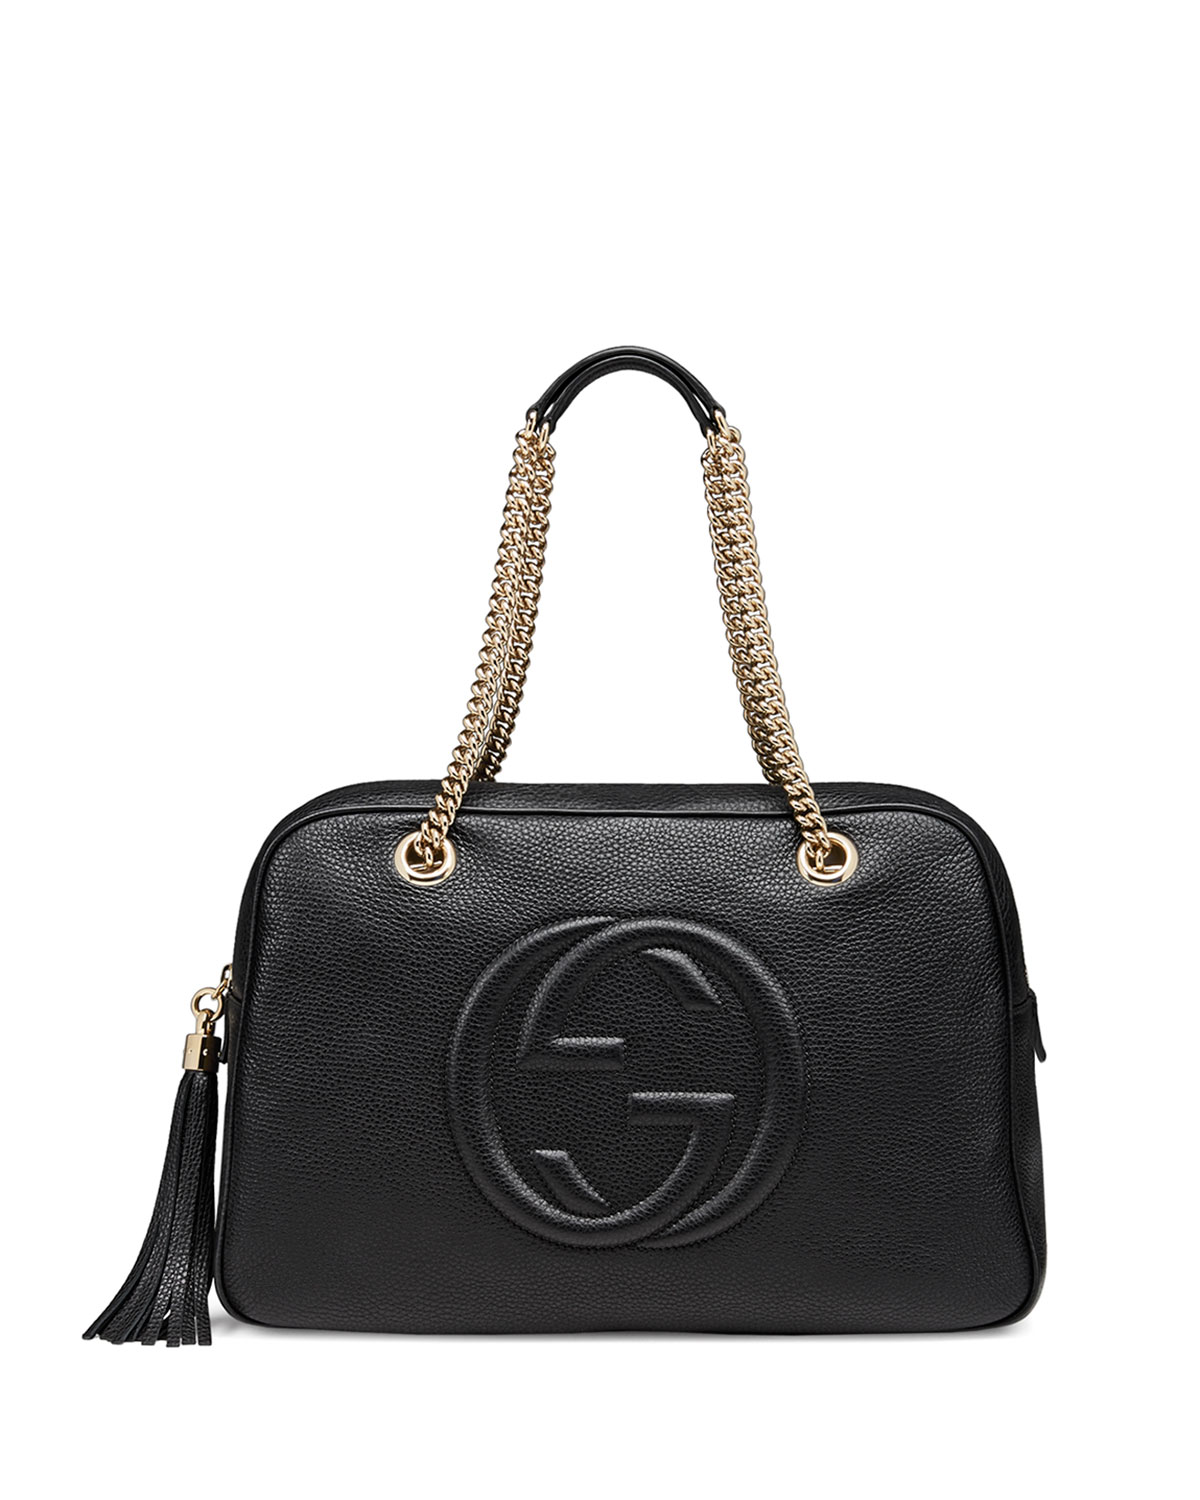 3c7cc299dd4 Gucci Soho Leather Chain Shoulder Bag